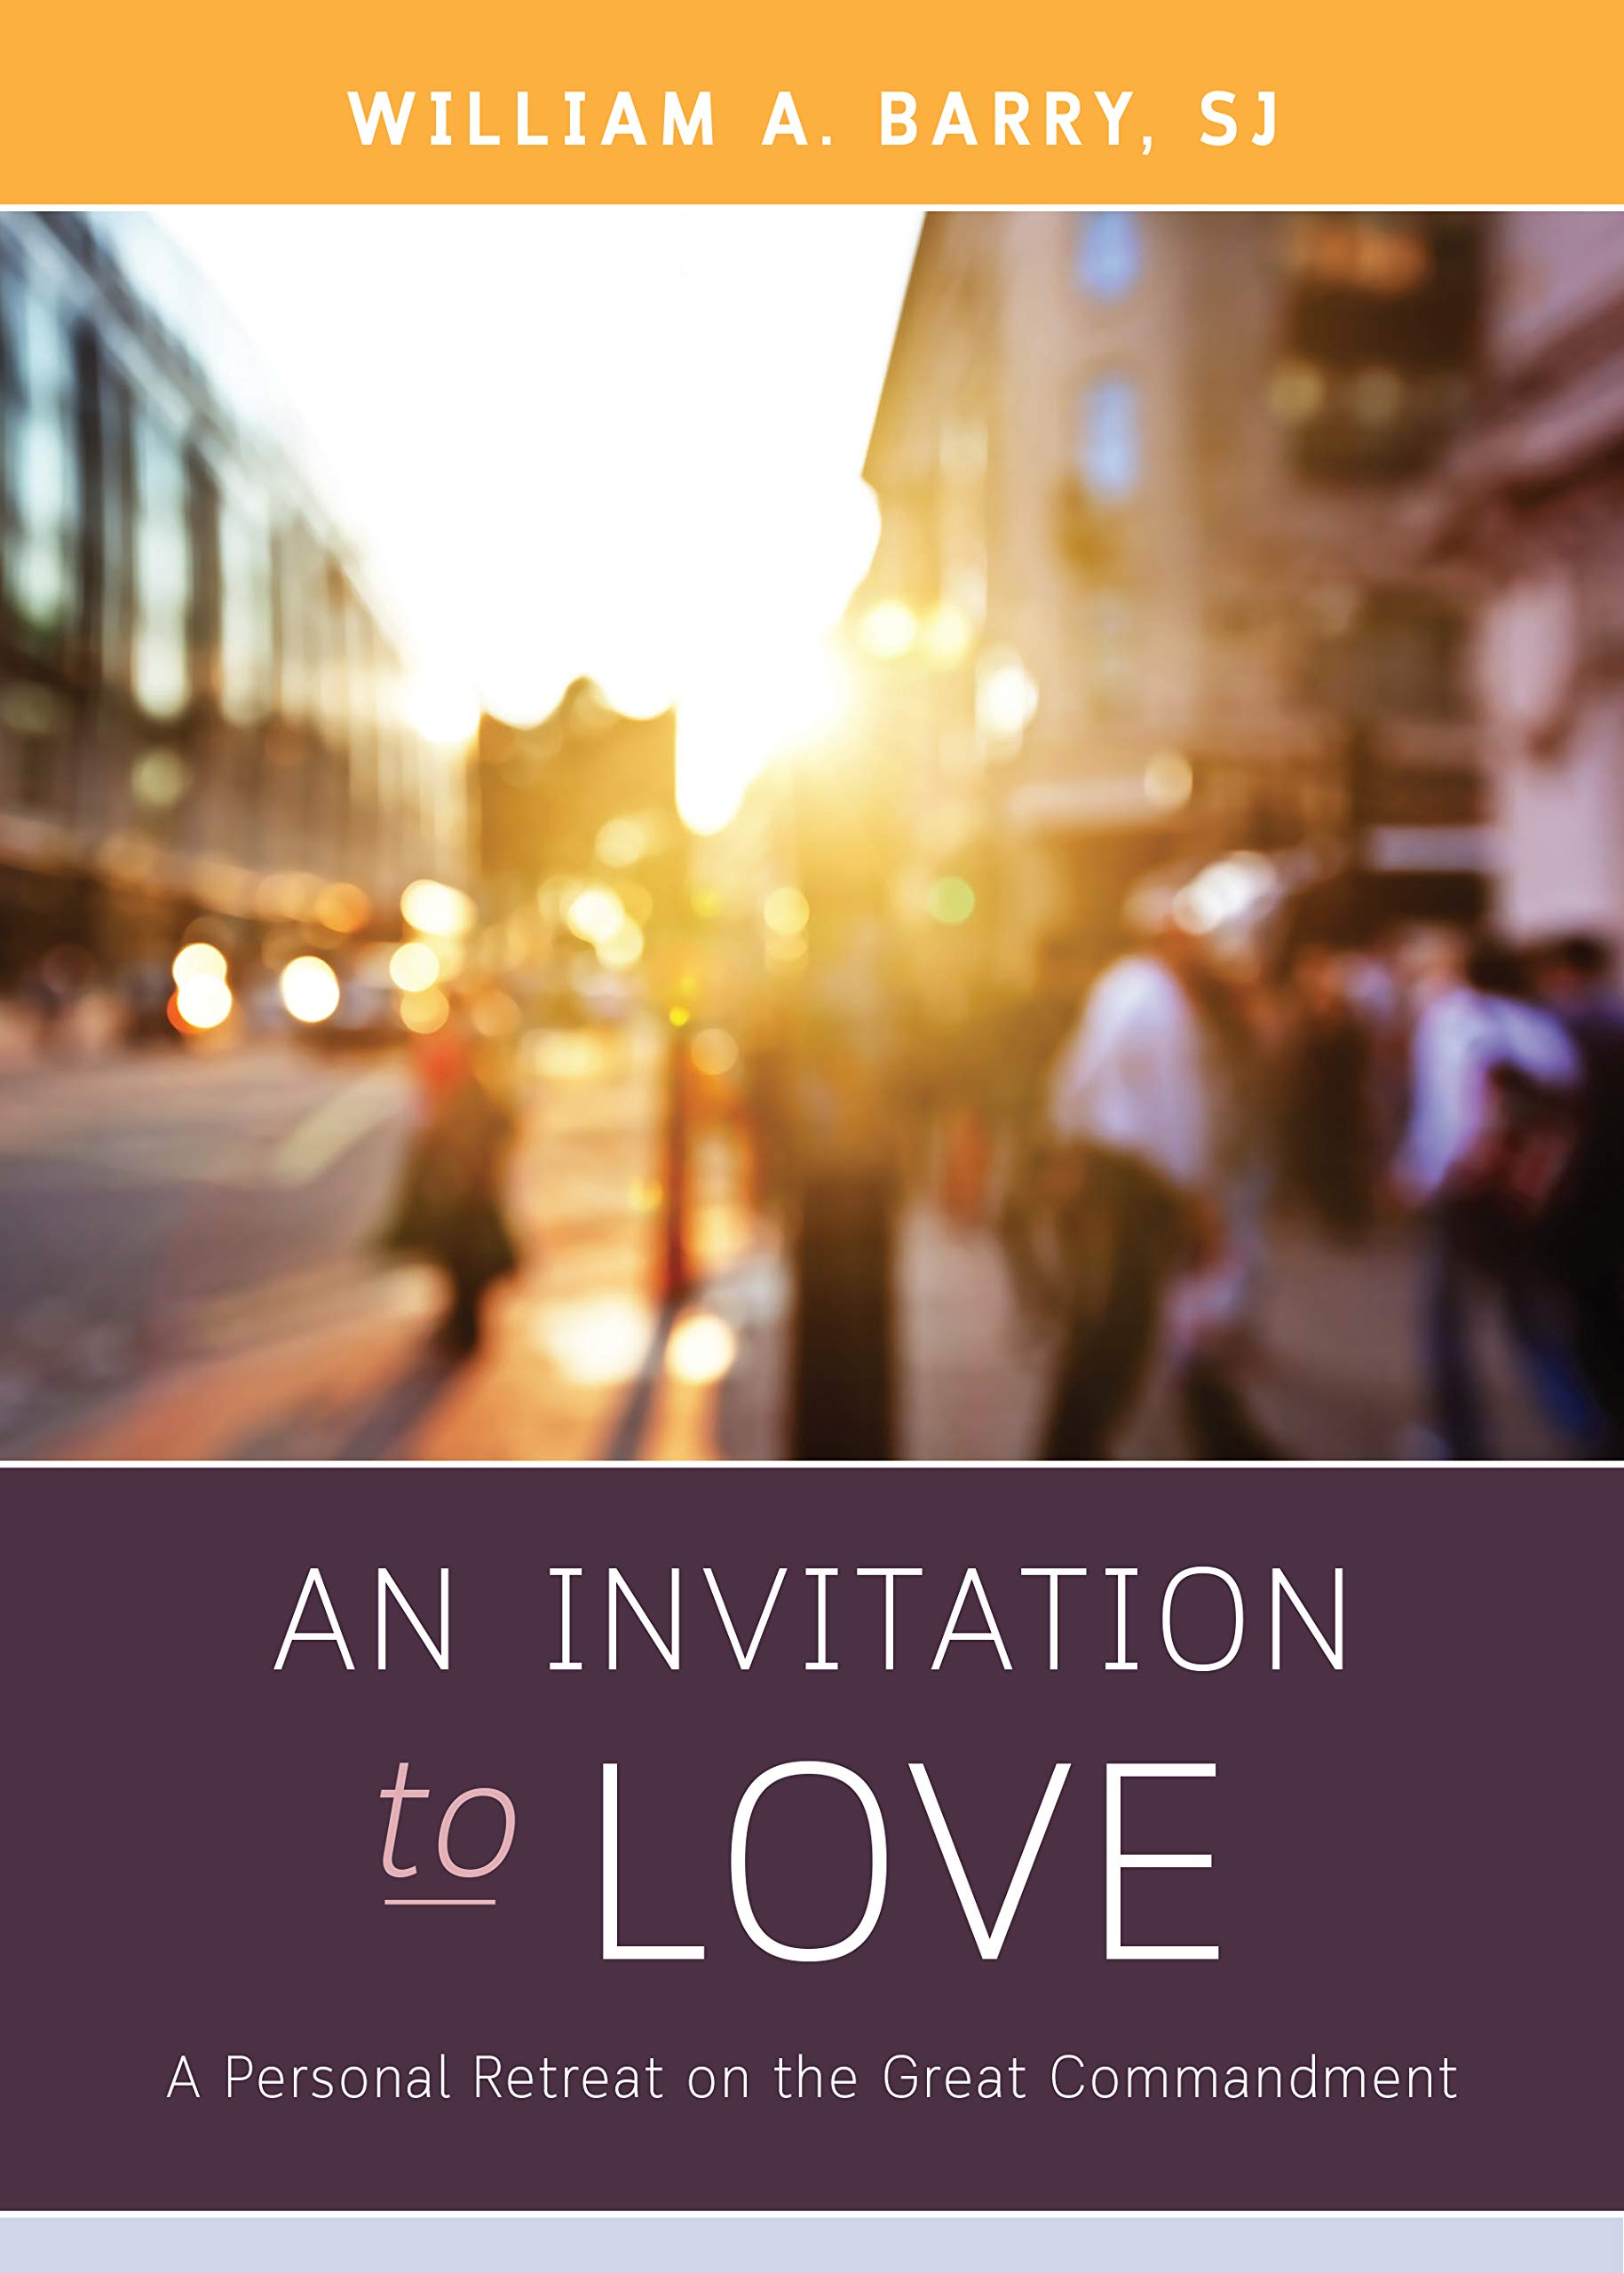 An Invitation to Love: A Personal Retreat on the Great Commandment: William  A. Barry SJ: 9780829446678: Amazon.com: Books